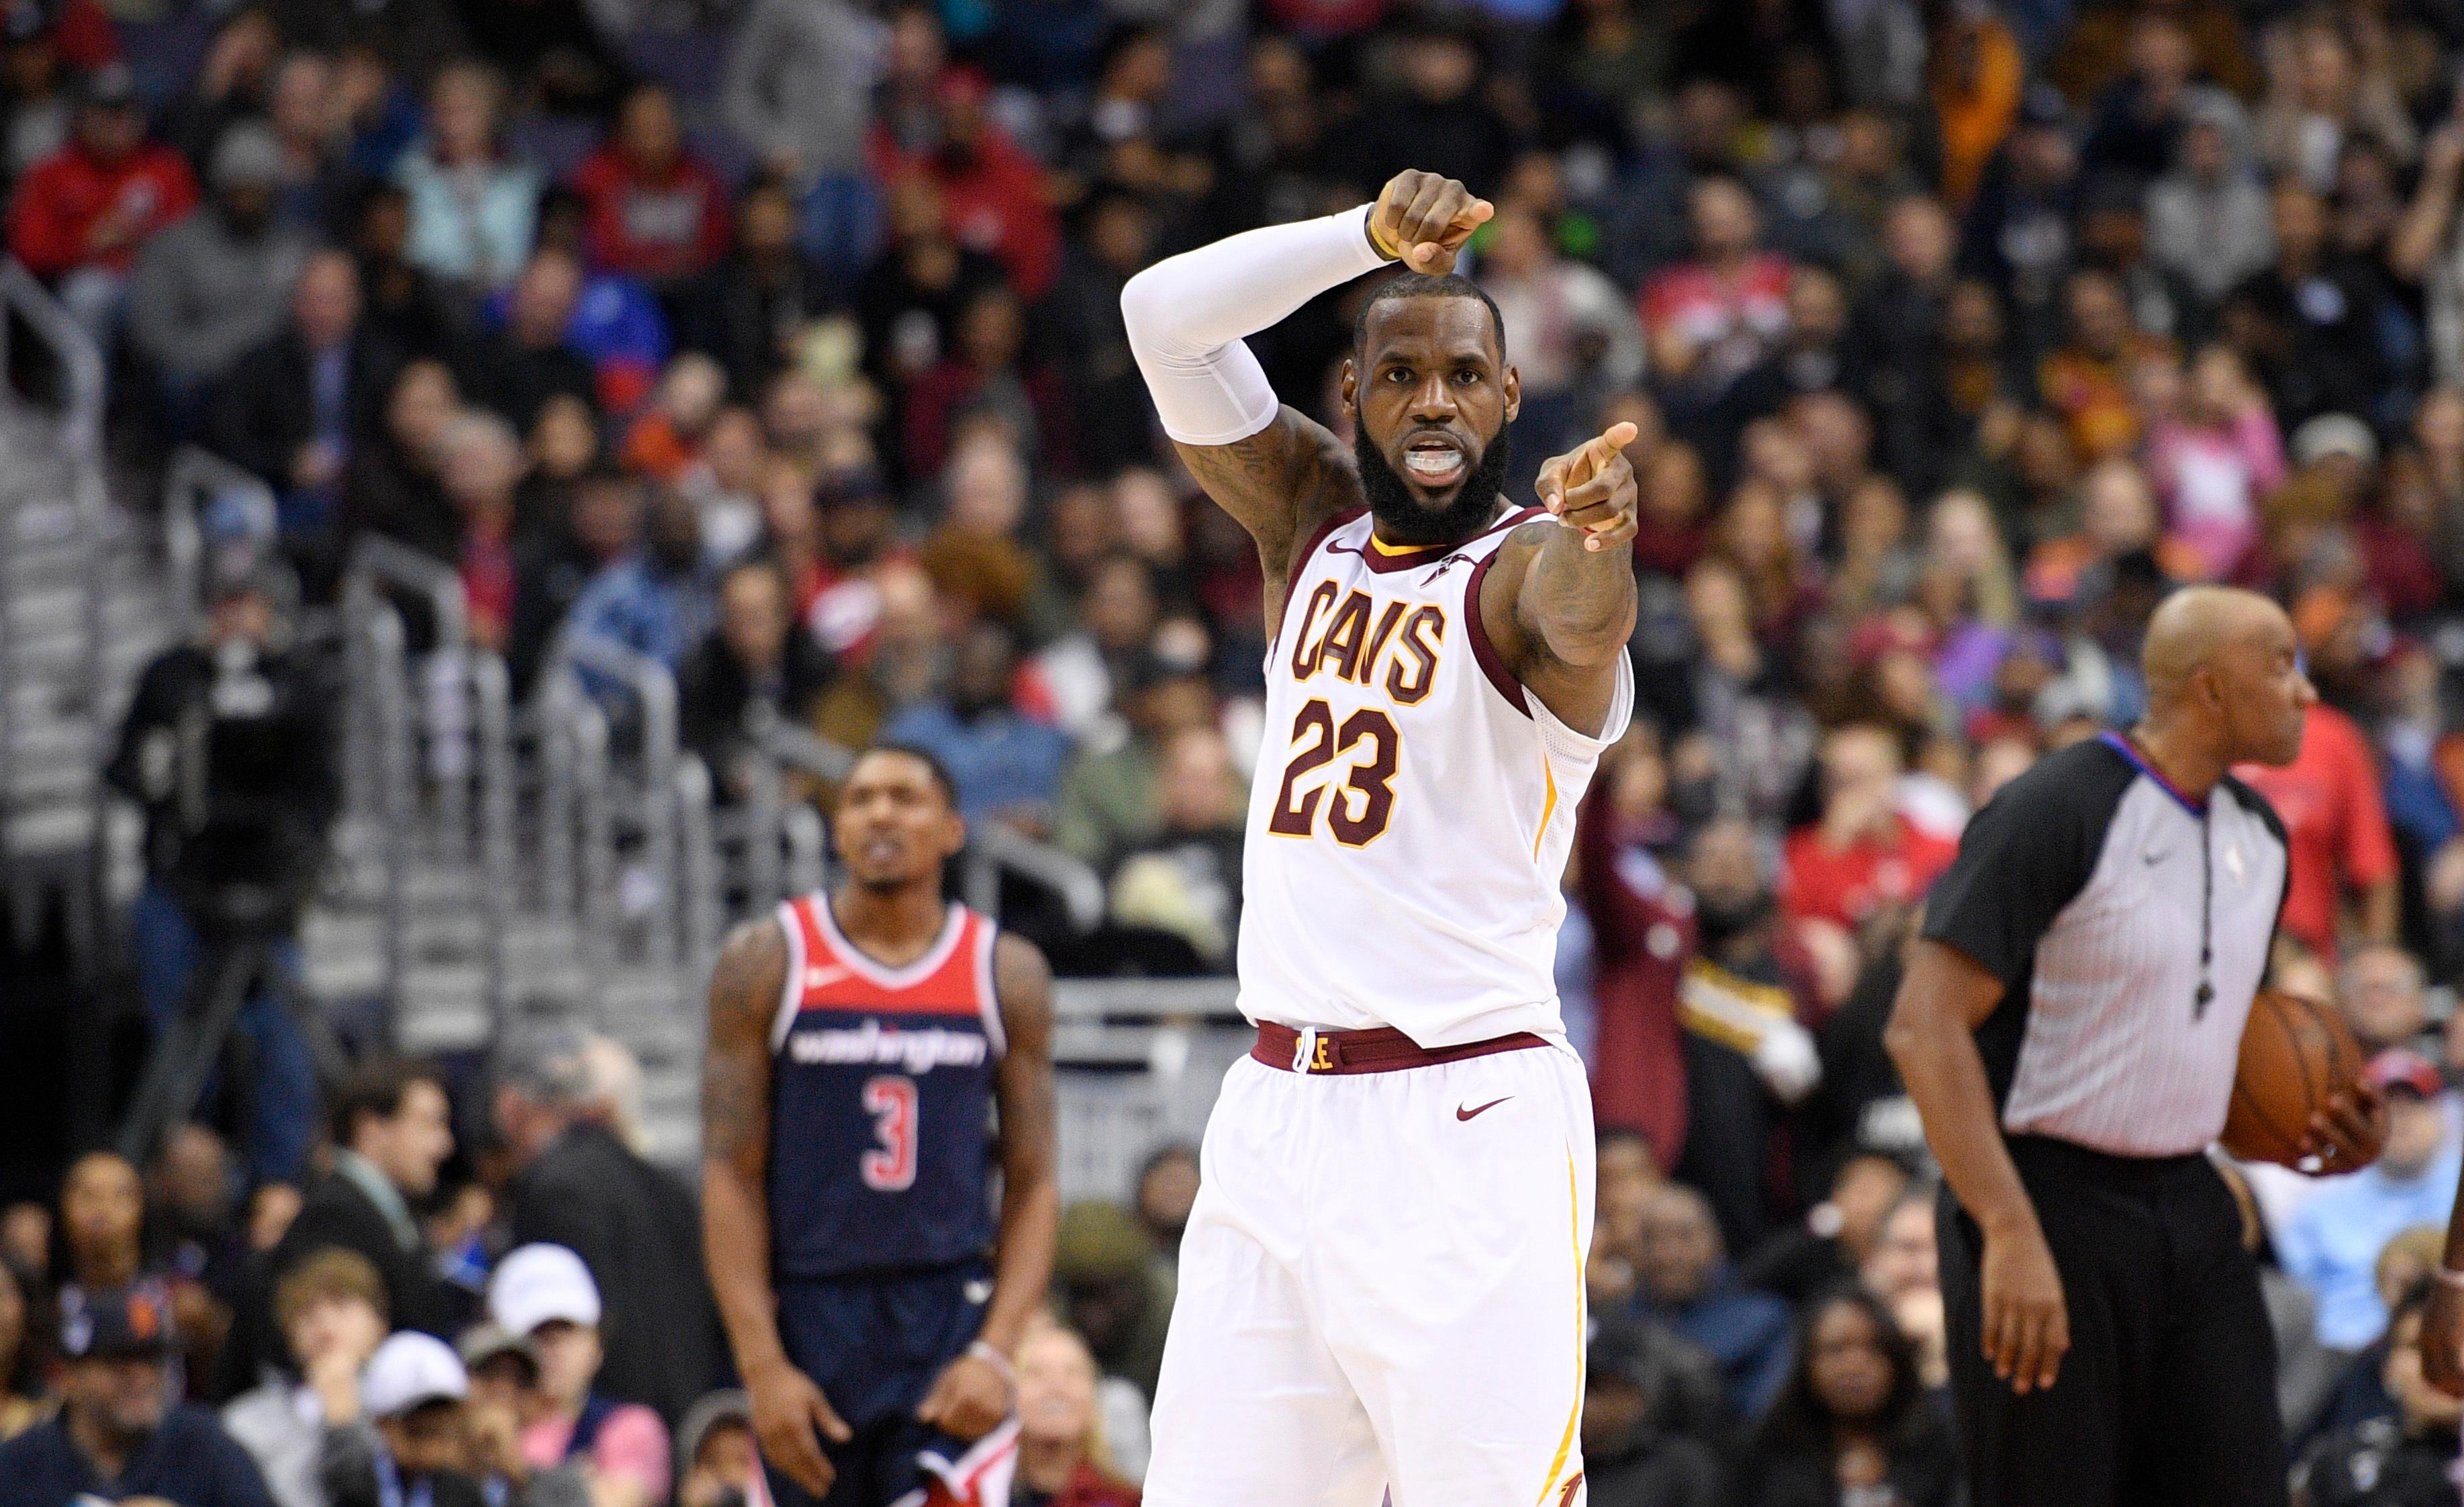 Cleveland Cavaliers forward LeBron James (23) gestures after he scored during the second half of an NBA basketball game as Washington Wizards guard Bradley Beal (3) looks on, Sunday, Dec. 17, 2017, in Washington. (AP Photo/Nick Wass)